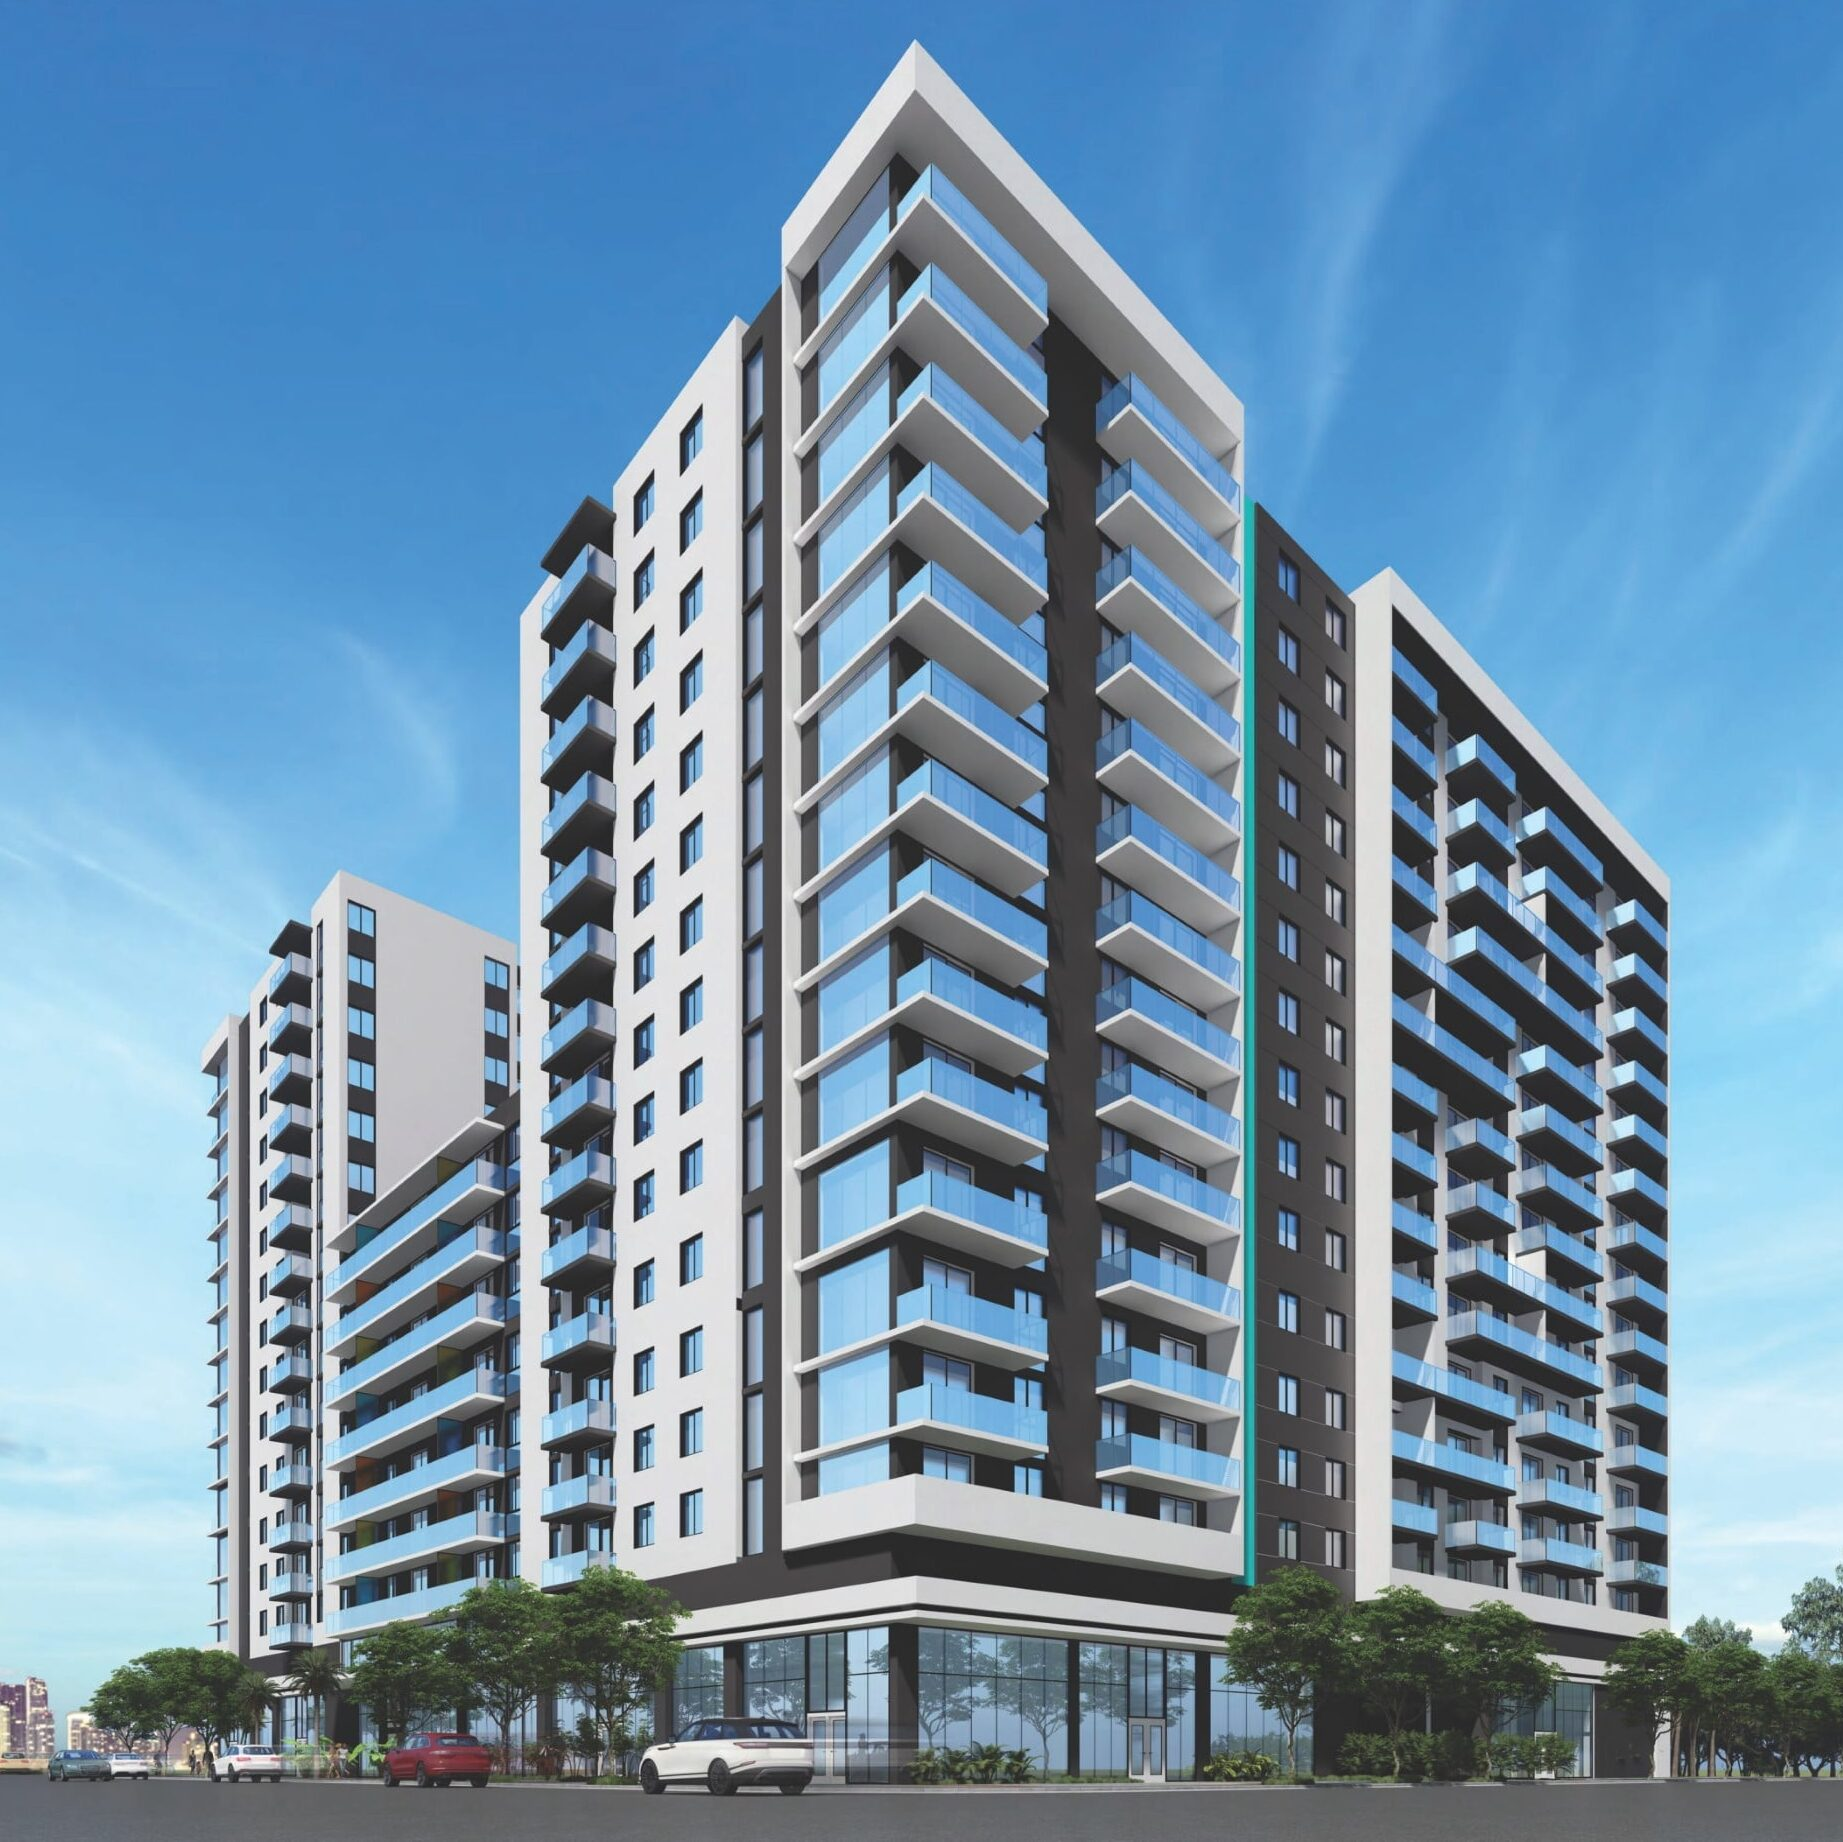 Rendering of the Urban22 Tower